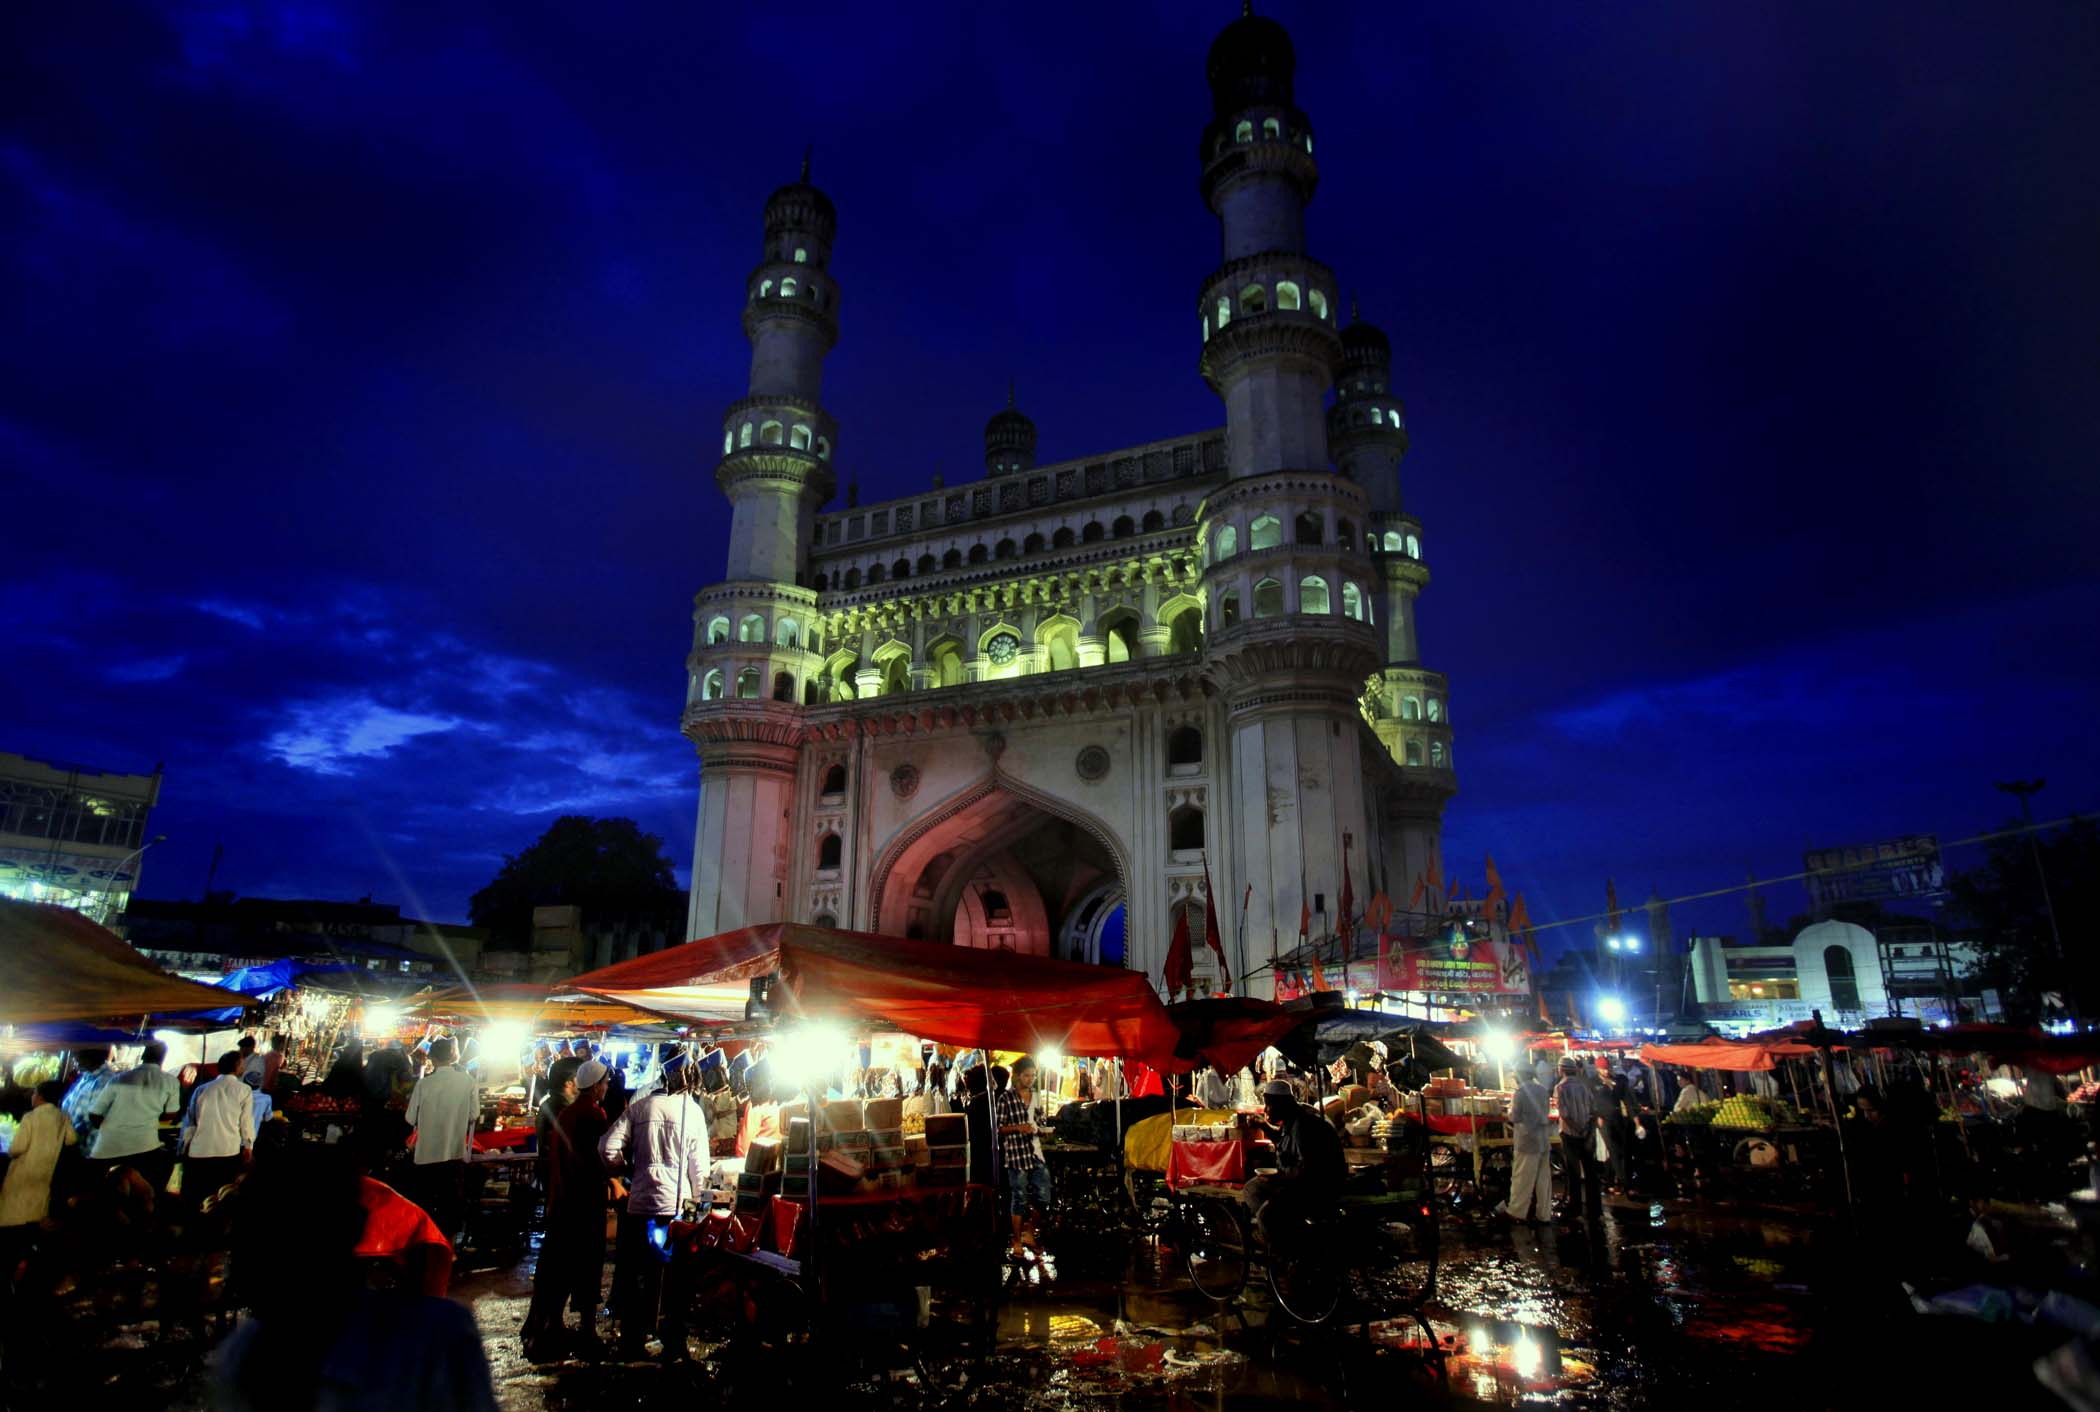 life around charminar in hyderabad, ramzan night bazaar near charminar